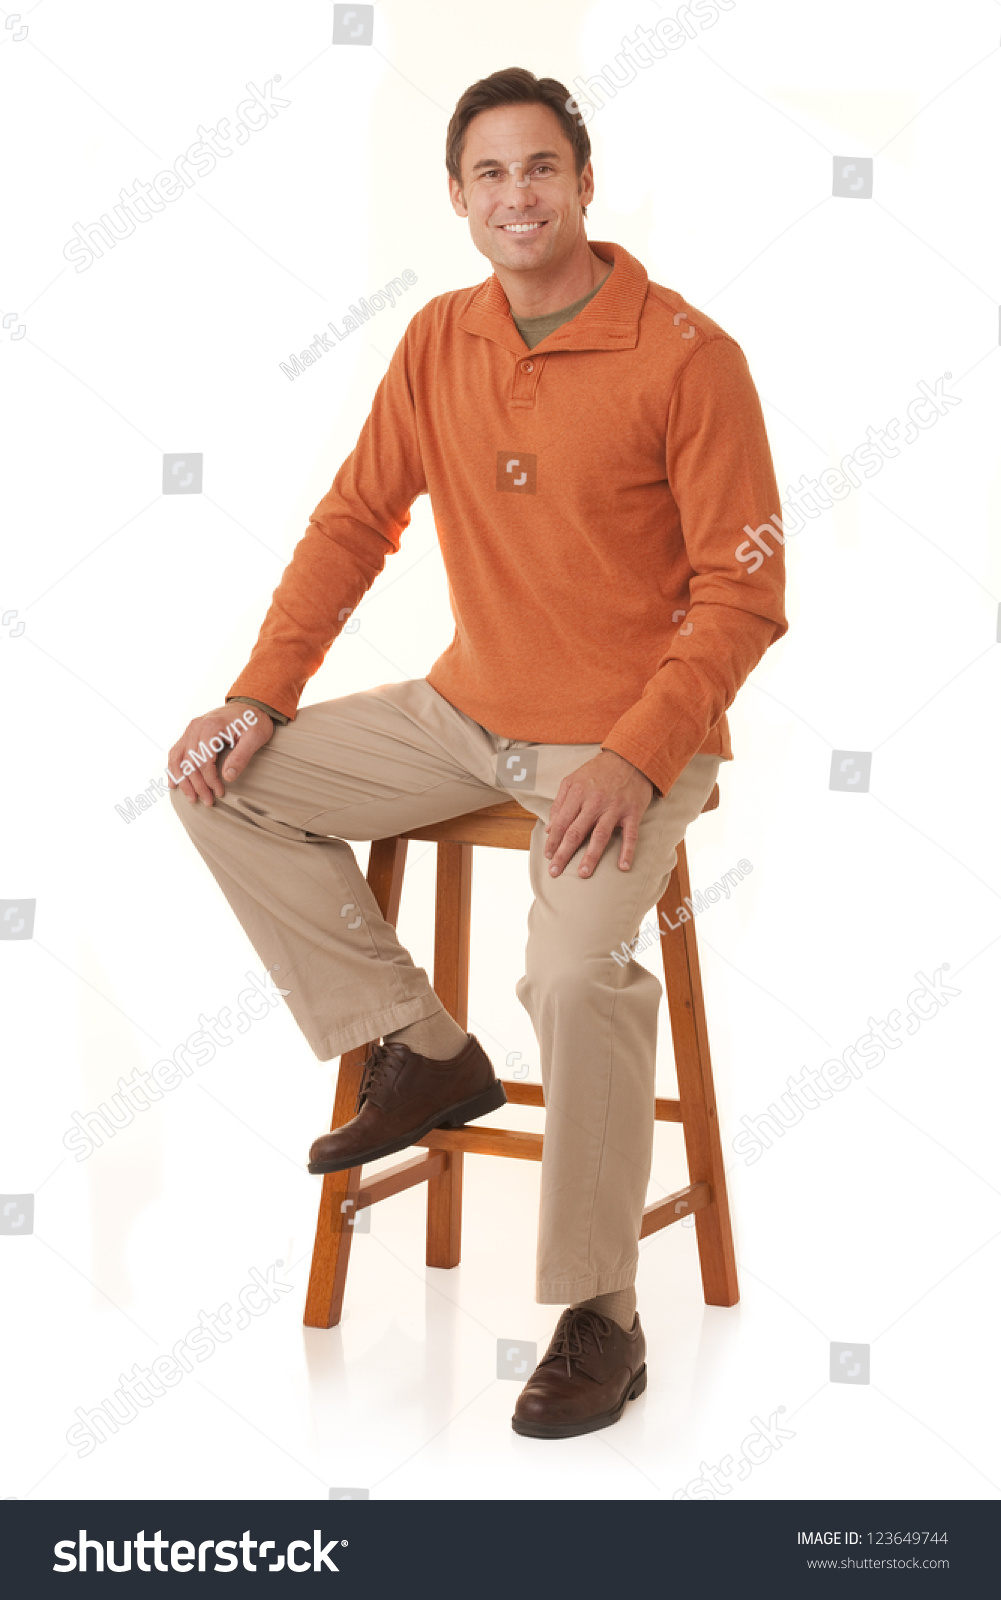 Portrait Of A Handsome Man Wearing An Orange Sweater Sitting On A Stool Isolated On A White